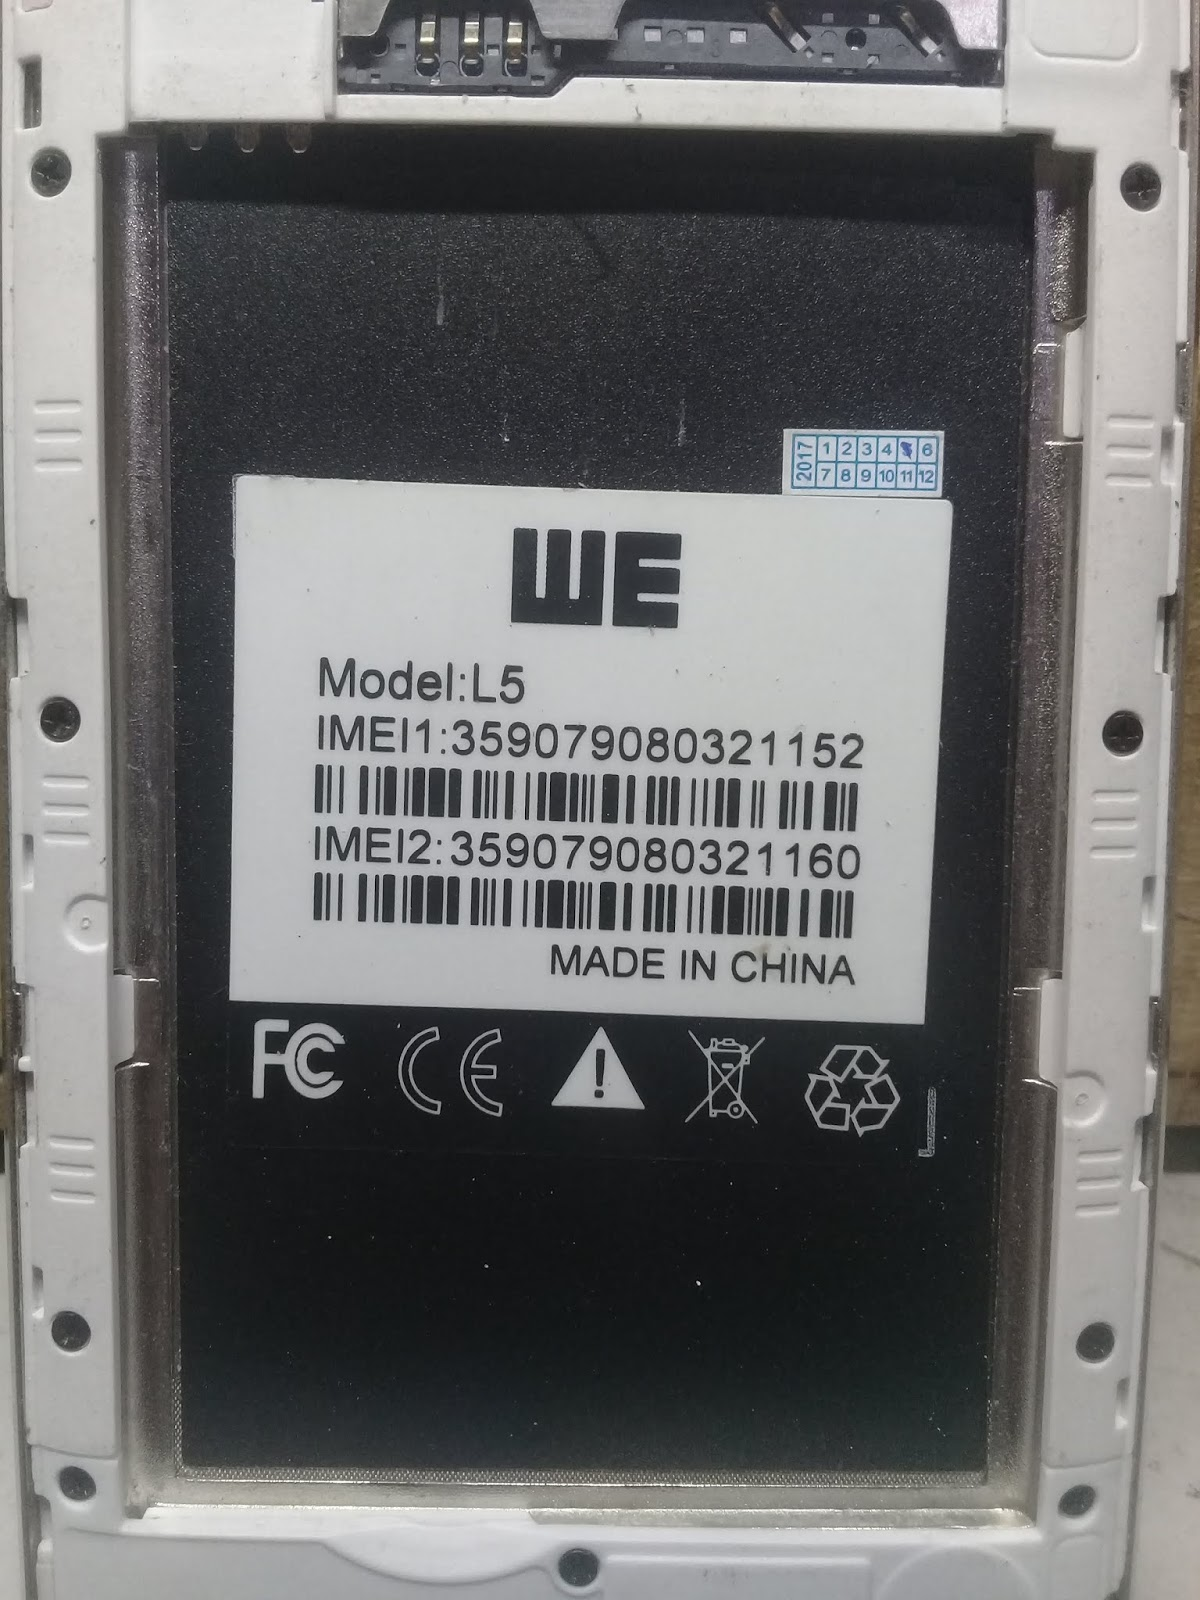 small resolution of we l5 flash file we l5 firmware we l5 dead recovery flash file we l5 dead recovery firmware we l5 lcd fix flash file we l5 lcd firmware we l5 firmware